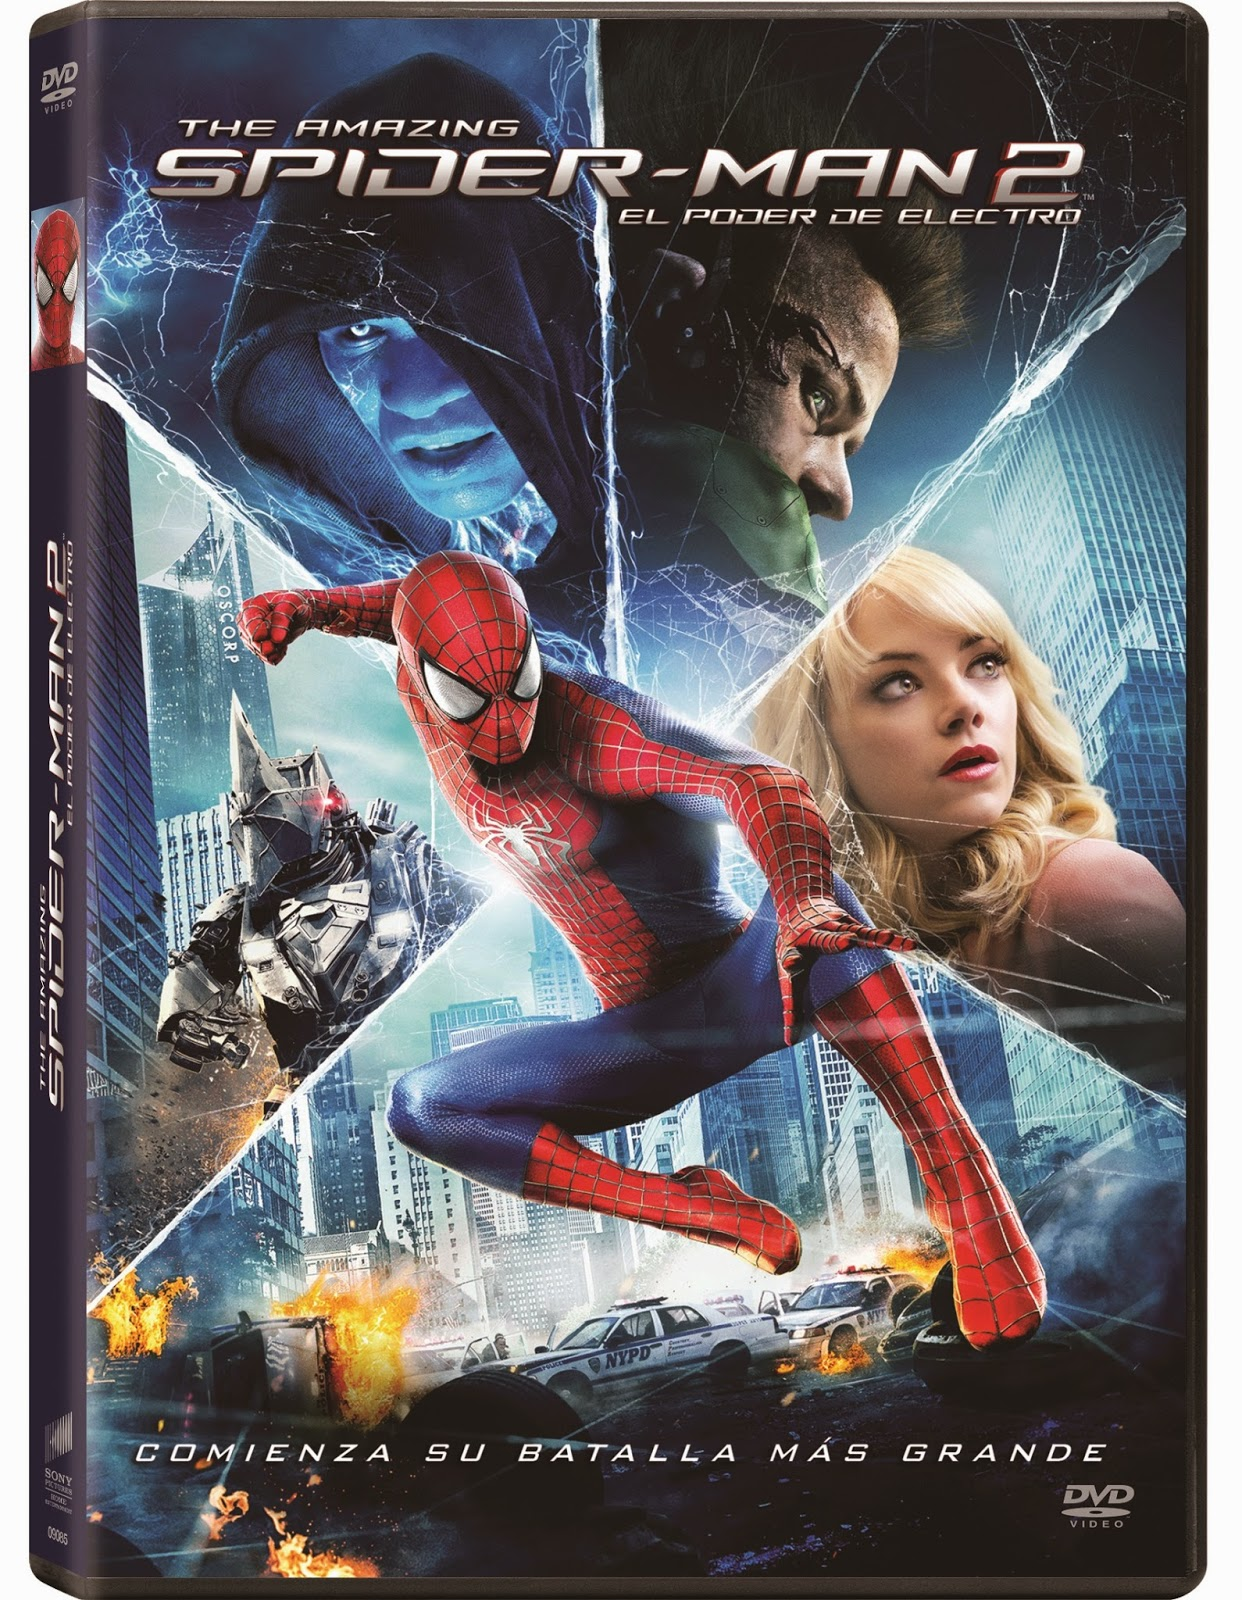 The Amazing Spider-Man 2 Rise Of Electro Stream